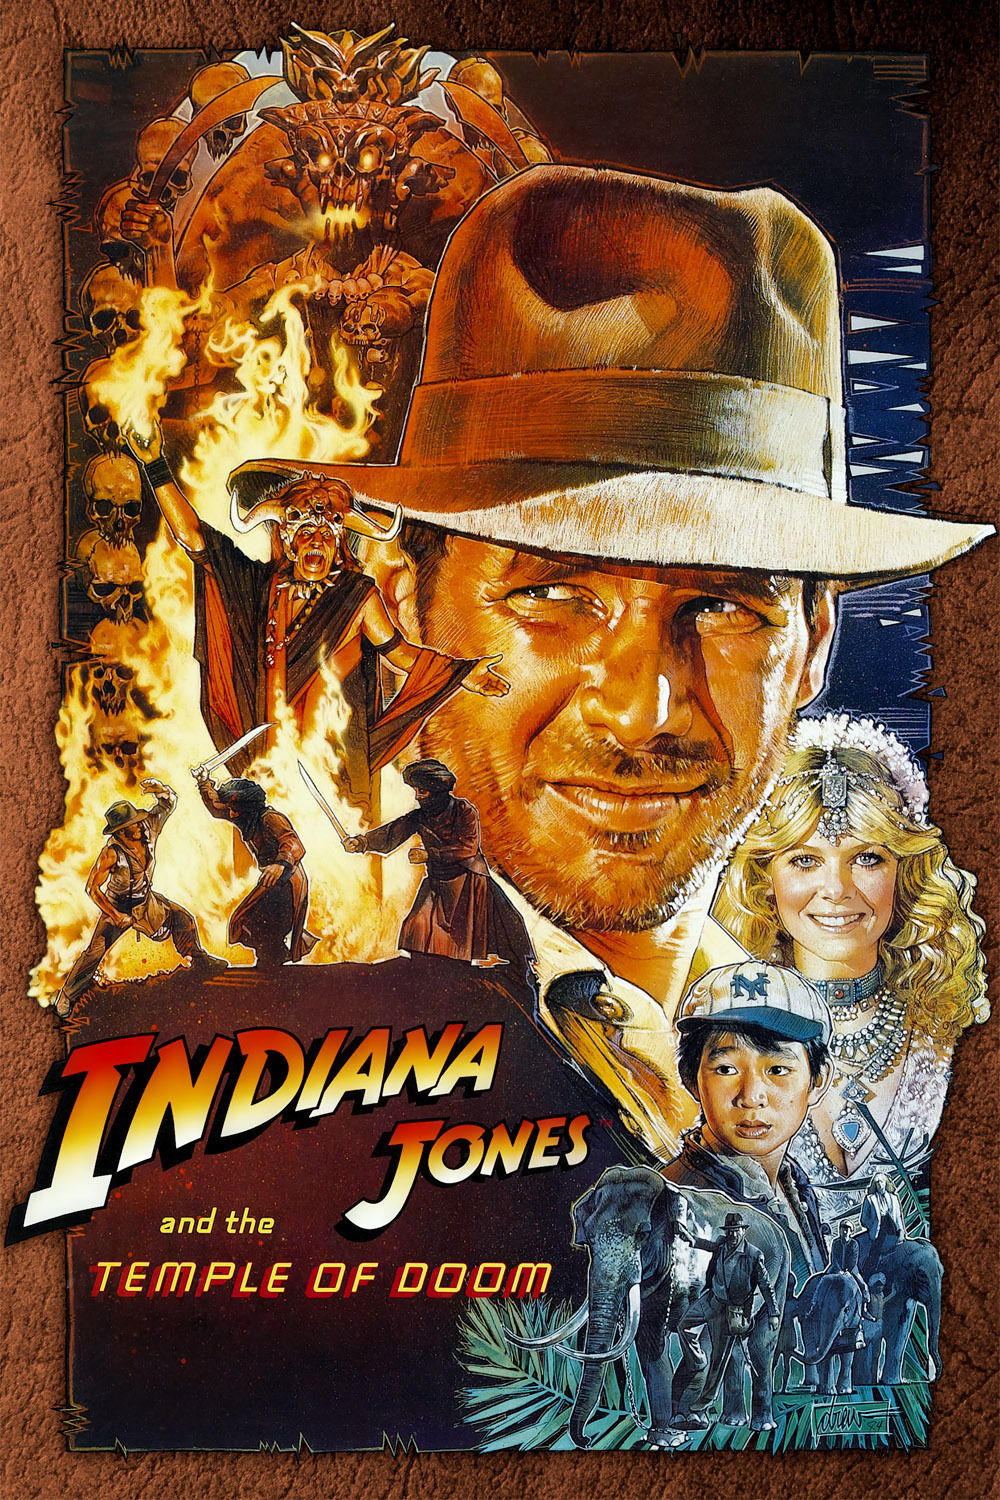 indiana-jones-and-the-temple-of-doom-poster-5.jpg